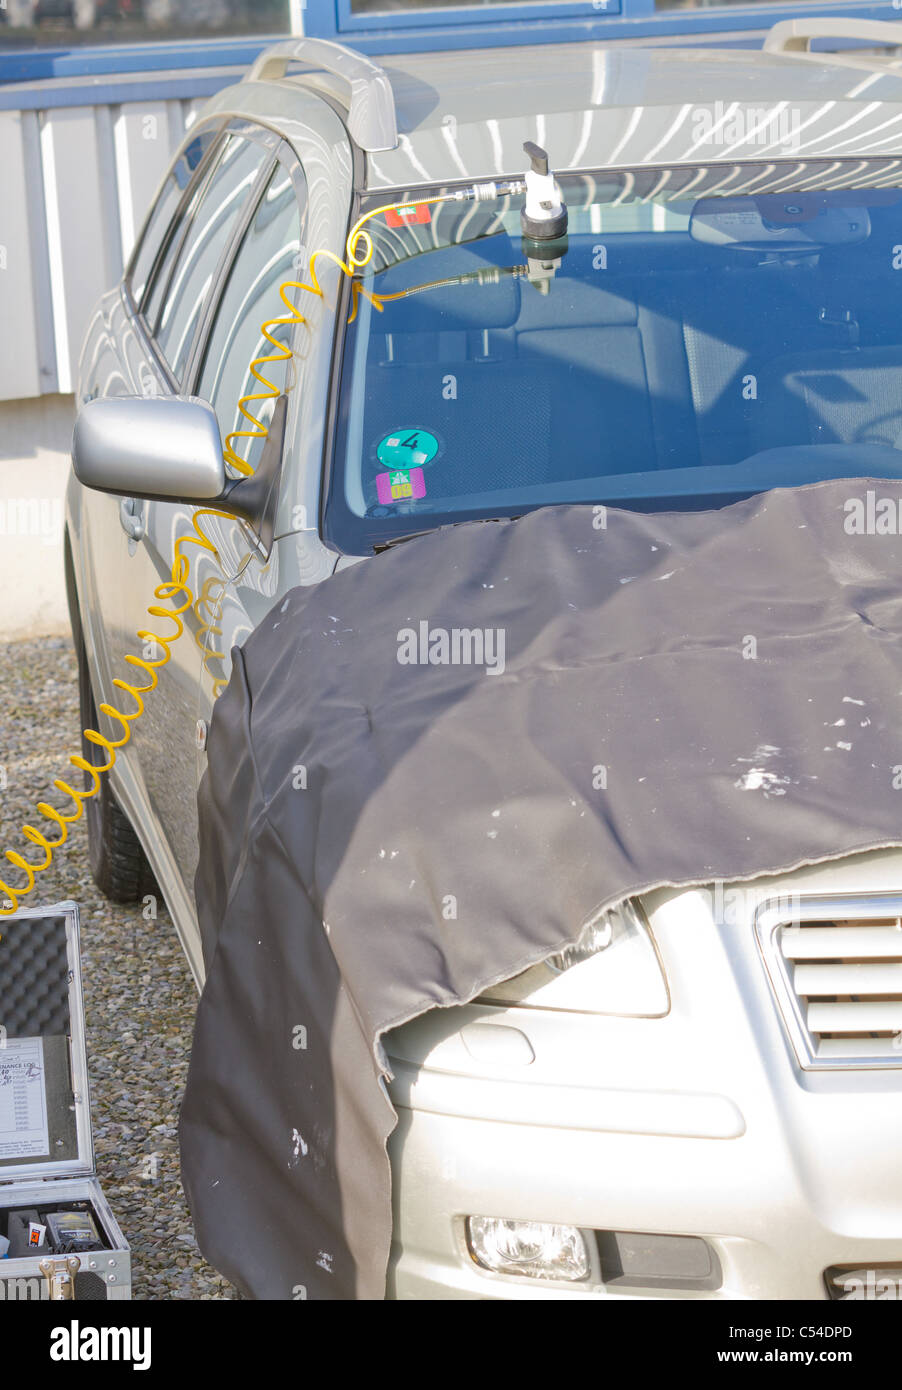 repairing dangerous crack in windshield on location without replacement glass for free, Smart repair - Stock Image